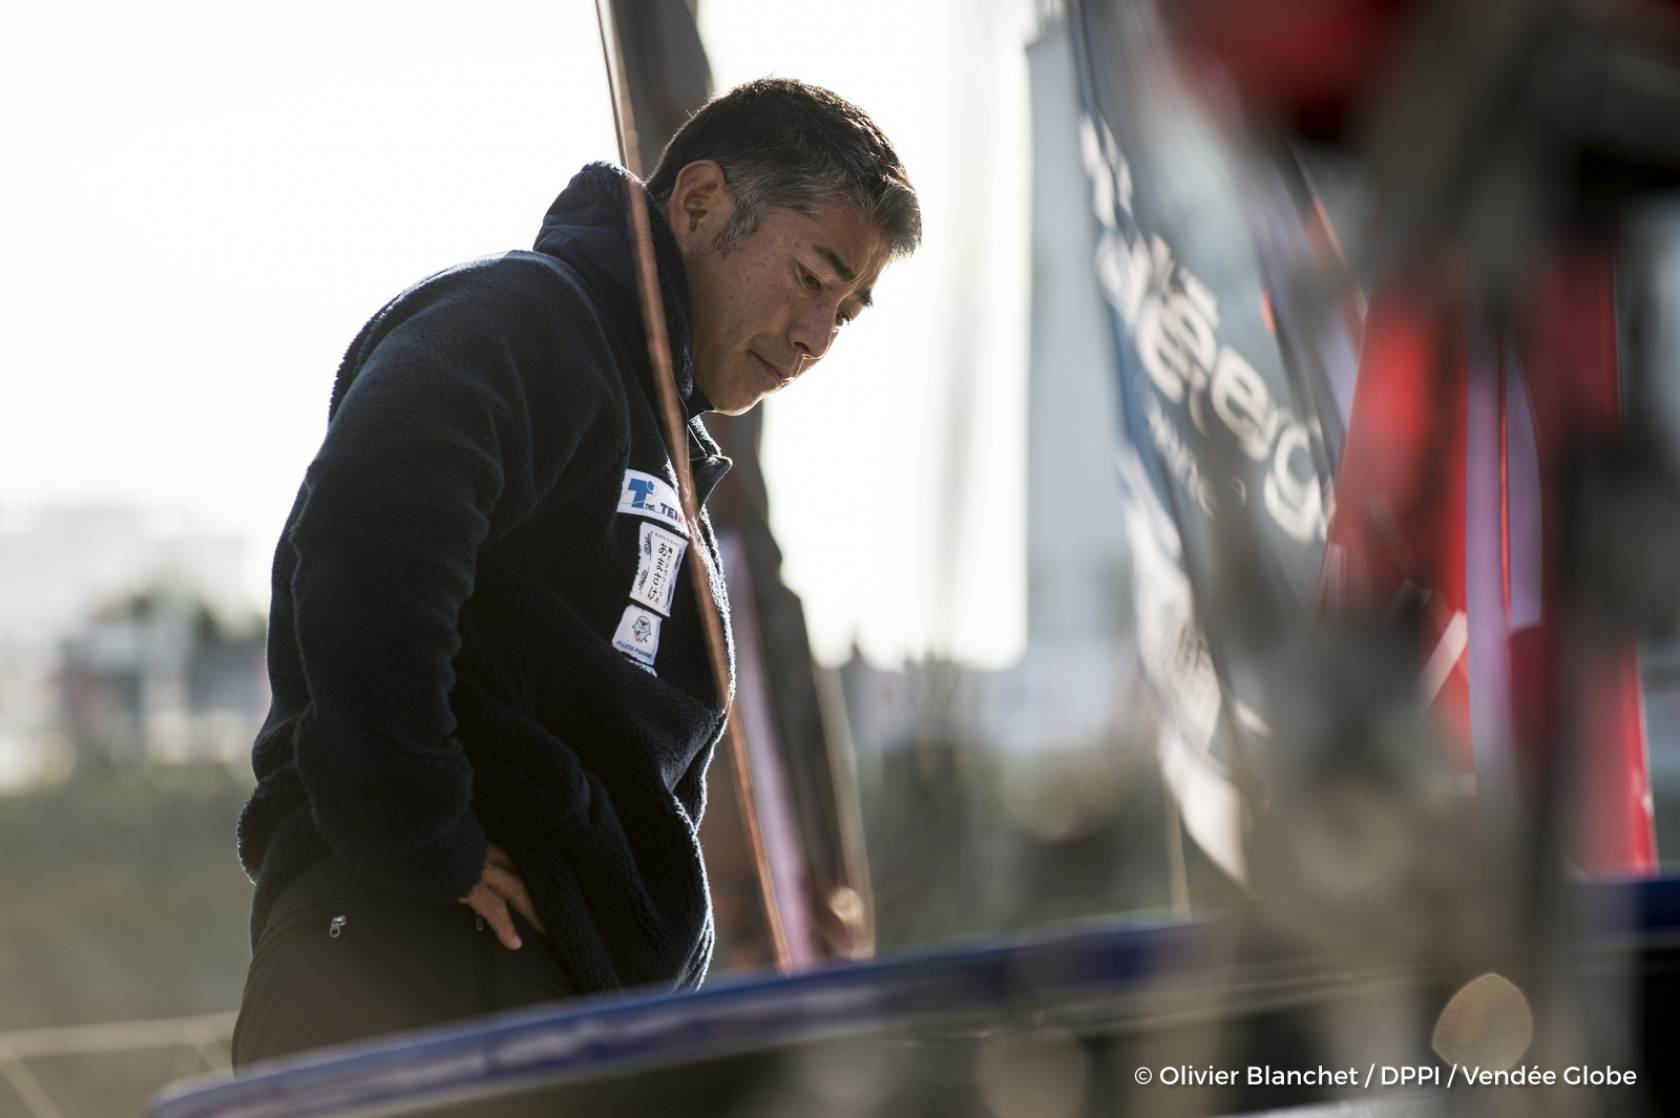 Kojiro Shiraishi (JAP), skipper Spirit of Yukoh, on pontoons of the Vendee Globe, in Les Sables d'Olonne, France, on November 2nd, 2016 - Photo Olivier Blanchet / DPPI / Vendée Globe Kojiro Shiraishi (JAP), skipper Spirit of Yukoh, sur les pontons du Ve